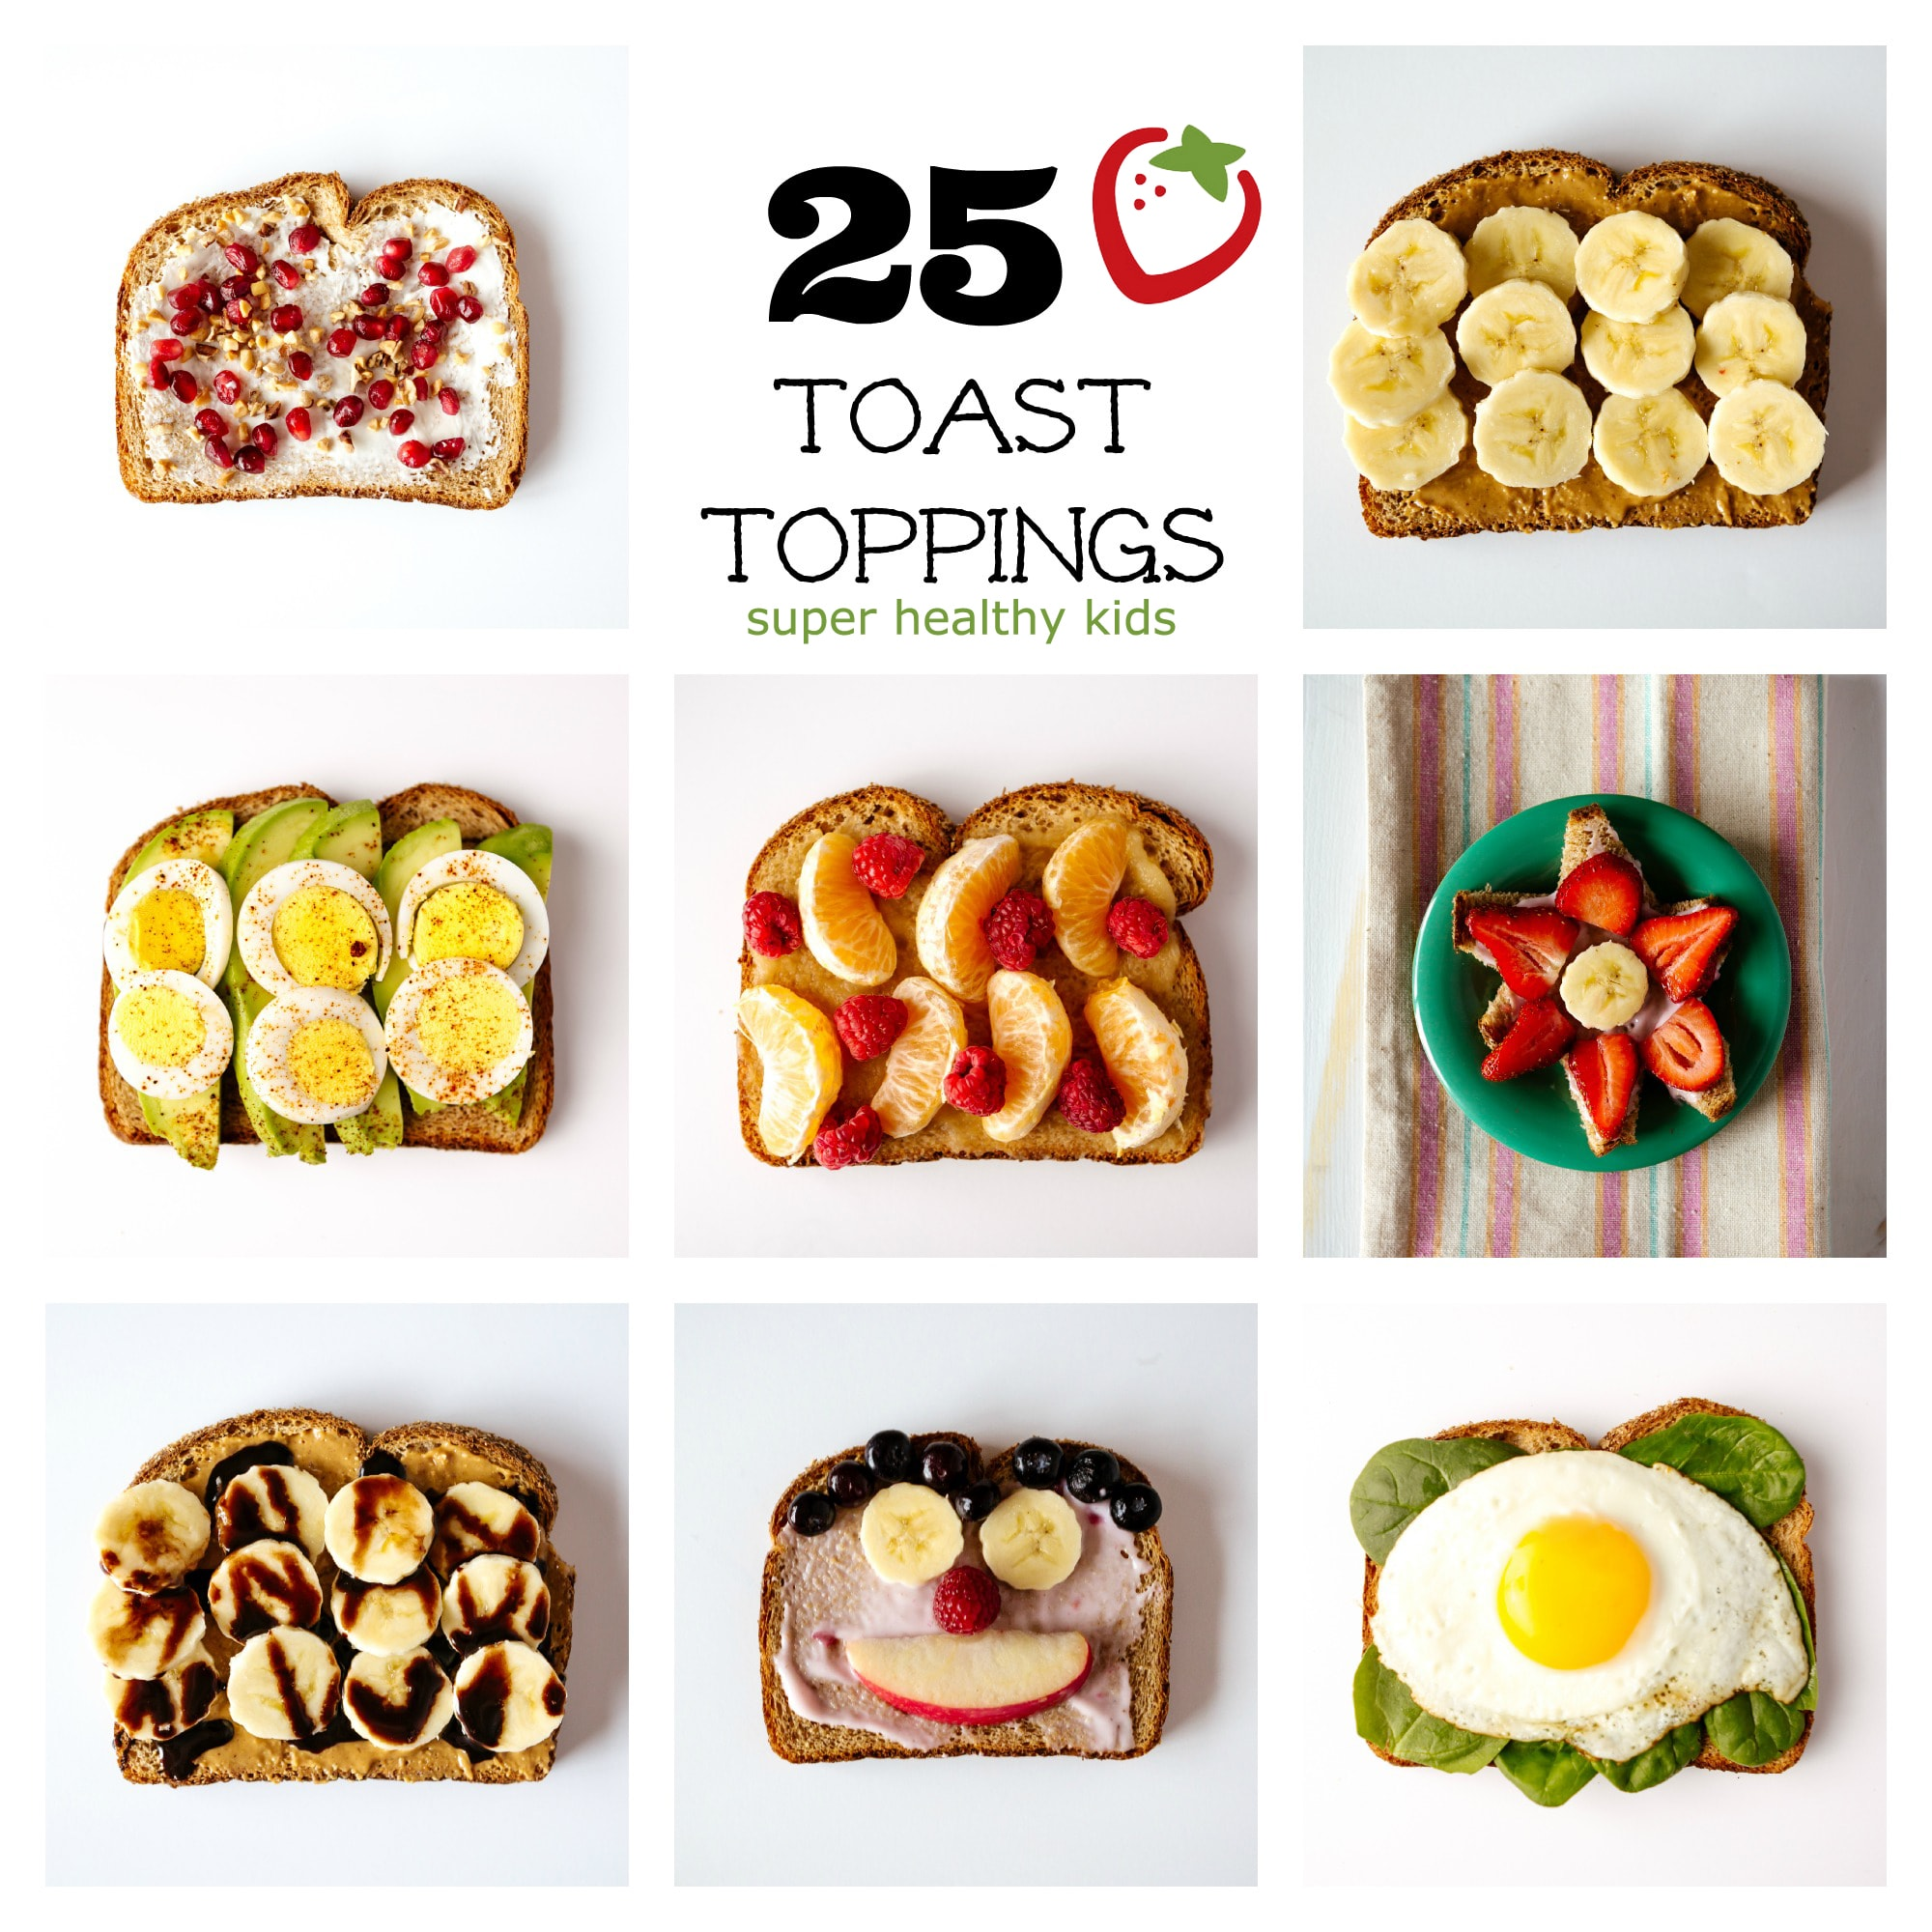 Toast Toppings: 25 Ideas for a Healthy Breakfast | Healthy Ideas for ...